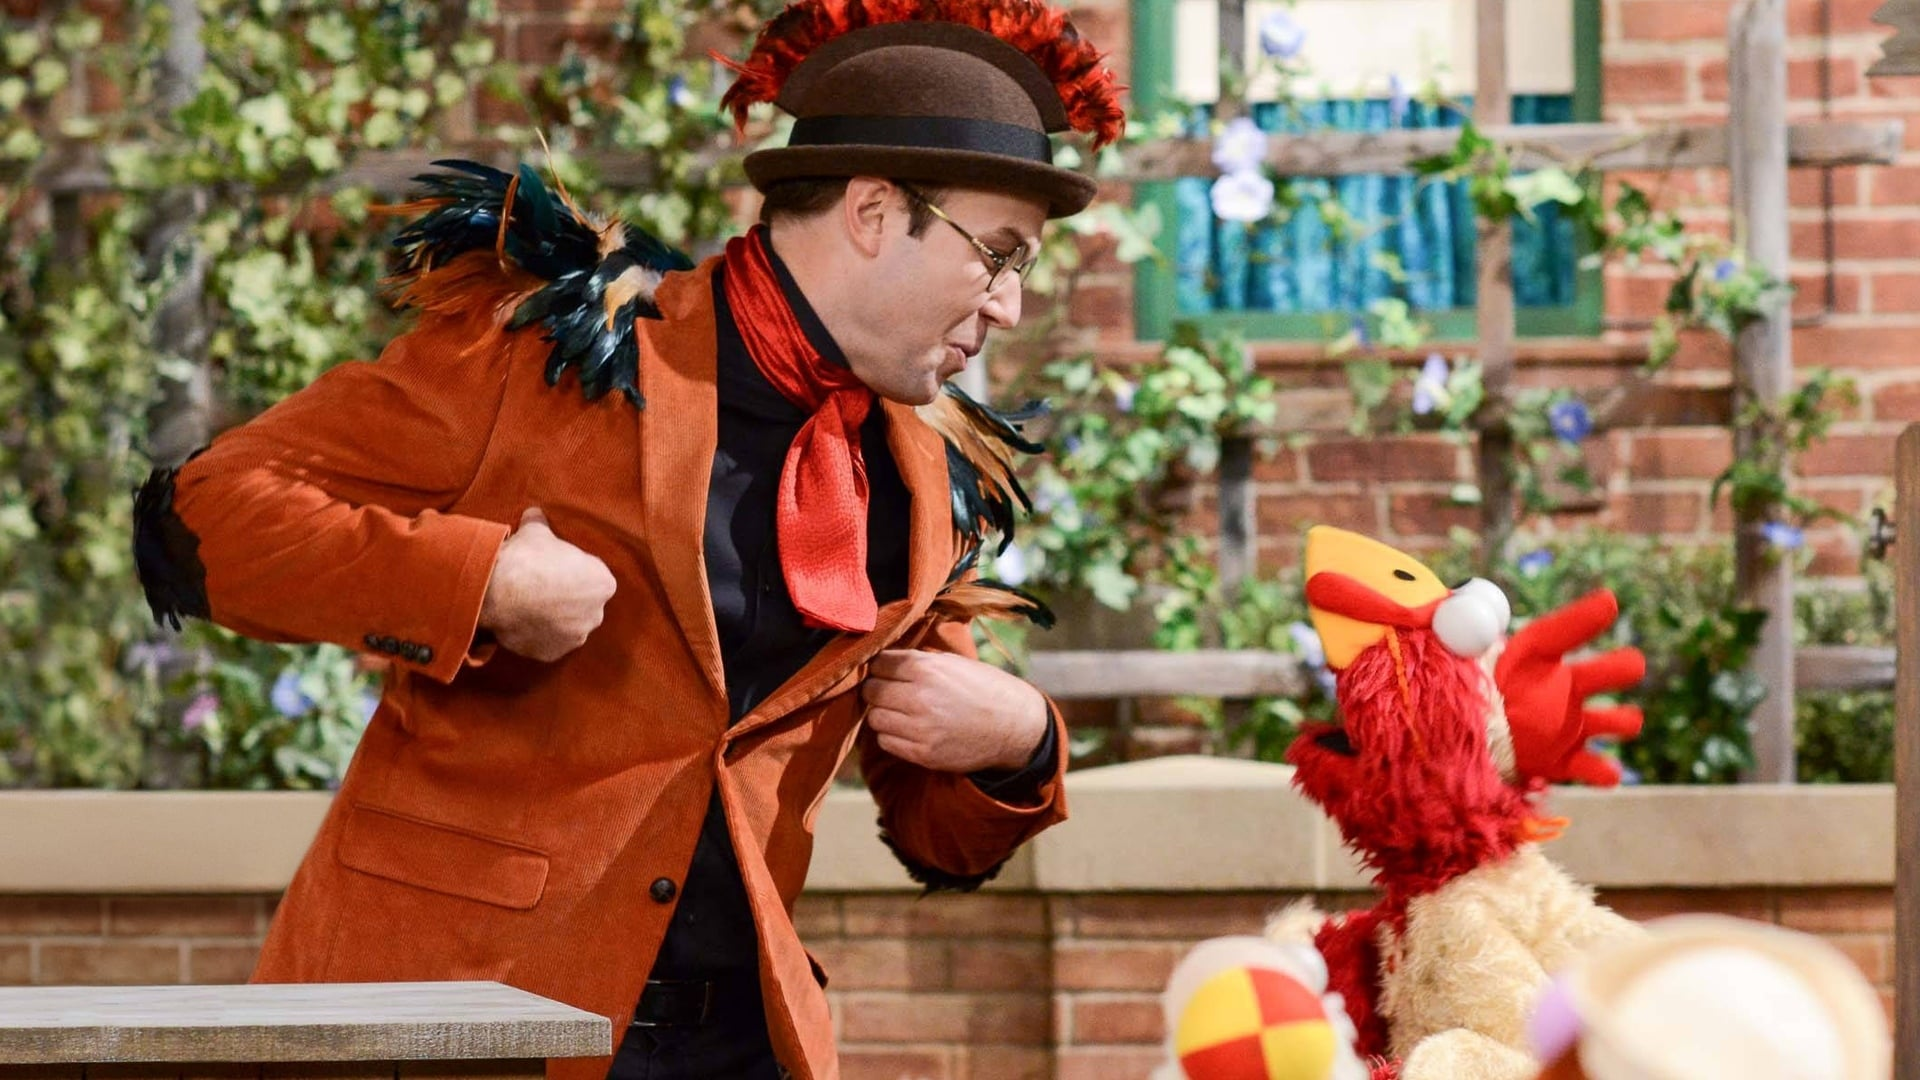 Sesame Street - Season 46 Episode 34 : School for Chickens